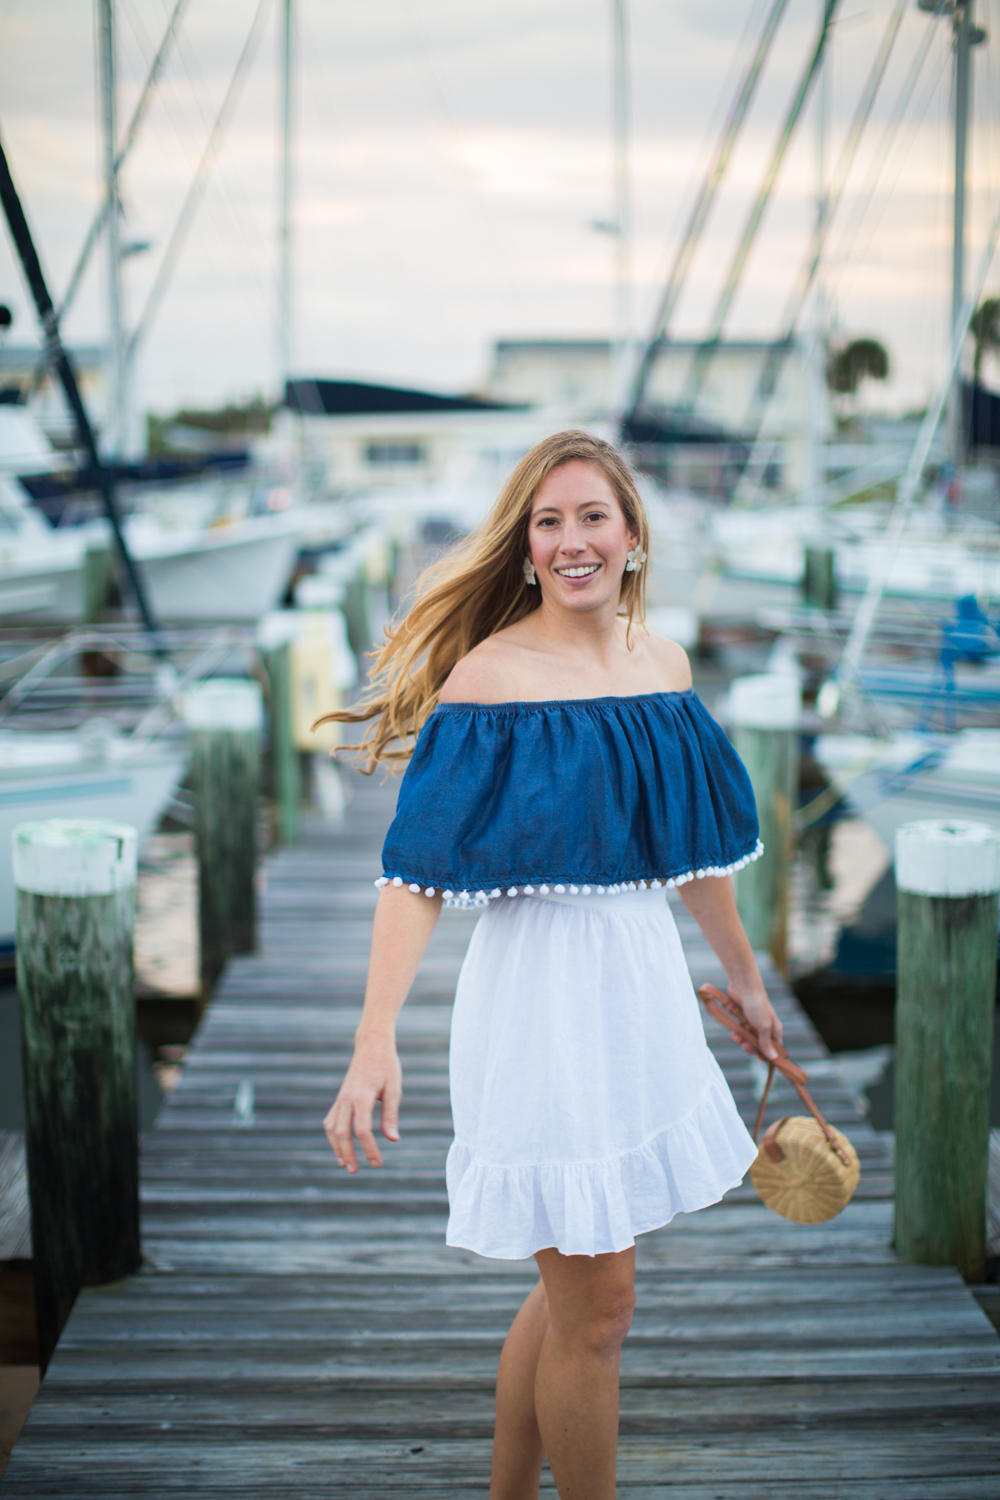 What to Wear on a Beach Vacation | Summer Beach Outfit Idea | Beach Vacation Outfit | Cruisewear | What to Pack for your Summer Beach Vacation | Beachwear for Women - A Nautical Inspired Summer Beach Outfit by Katie McCarty of Sunshine Style